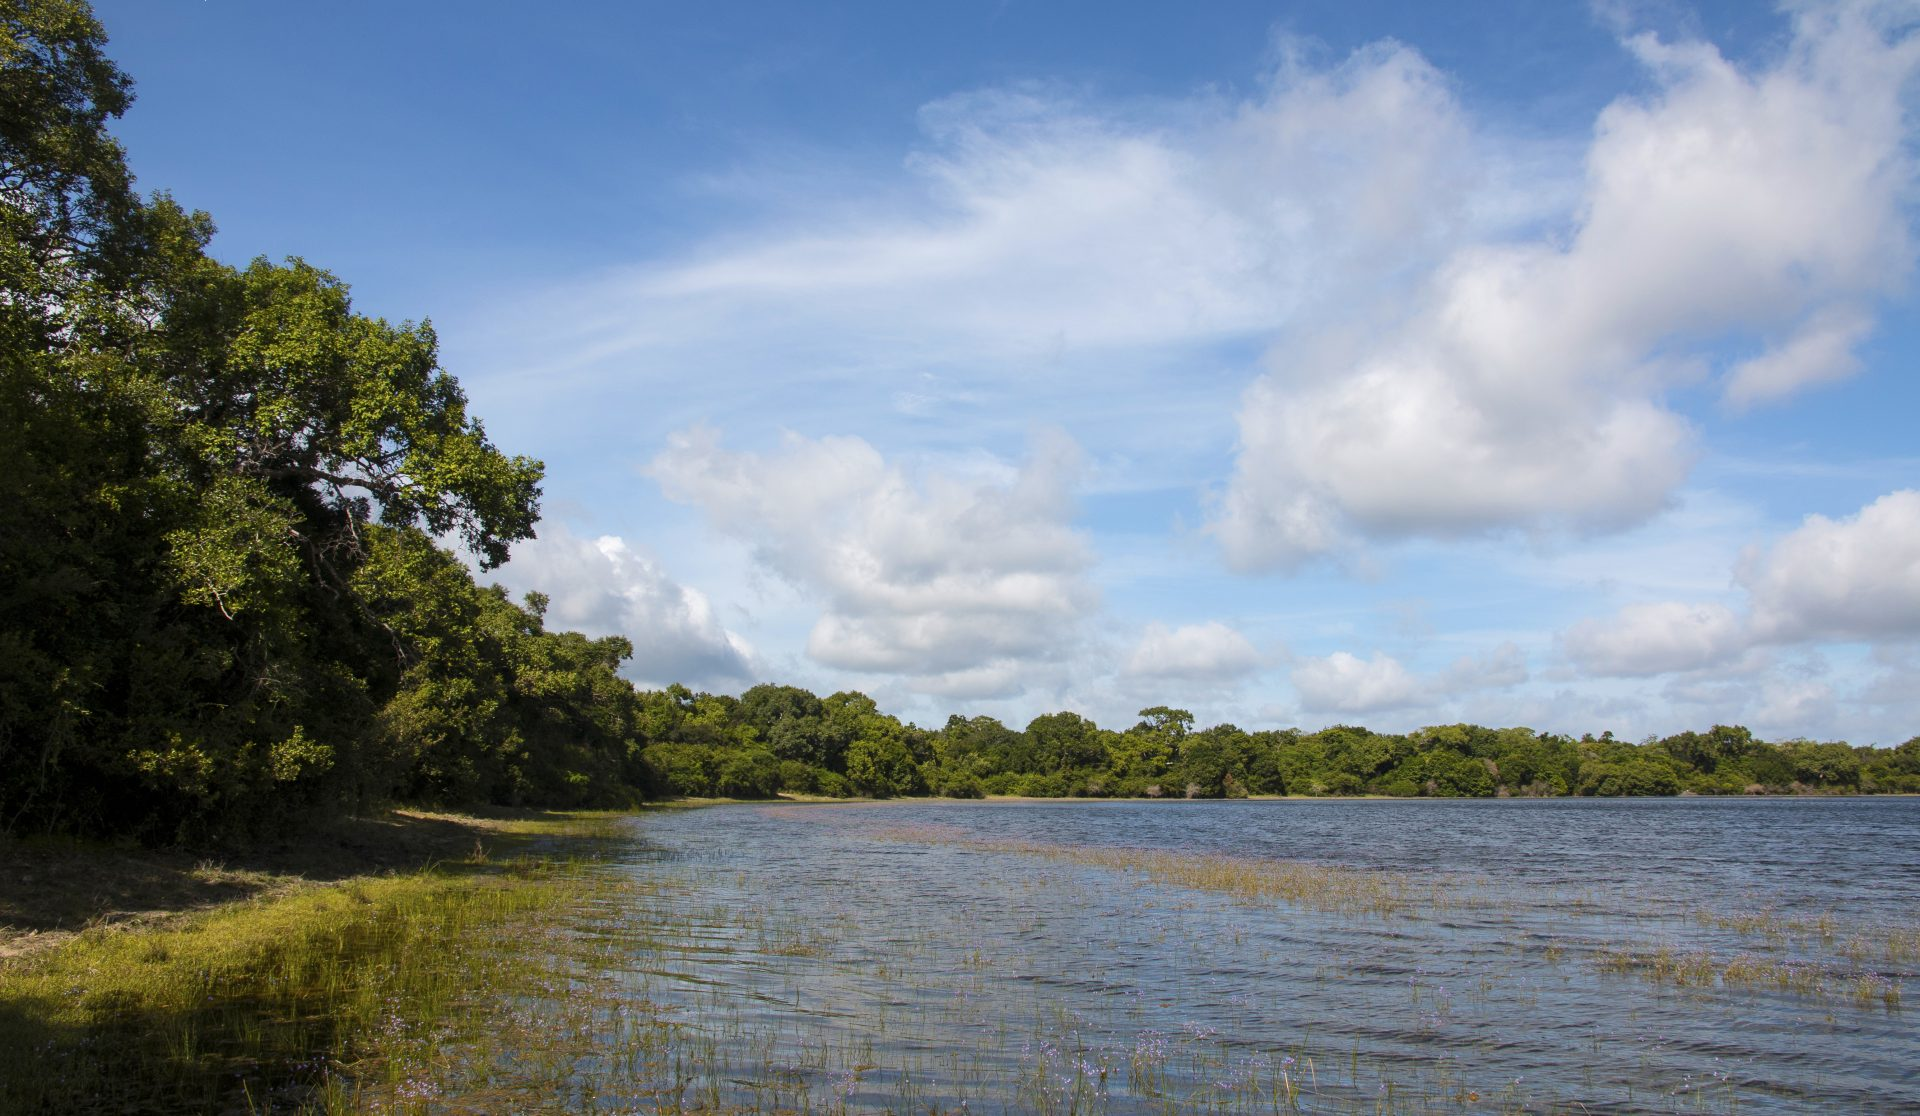 IUCN Red Listing of Ecosystems – Wilpattu Ramsar Site as a Case Study